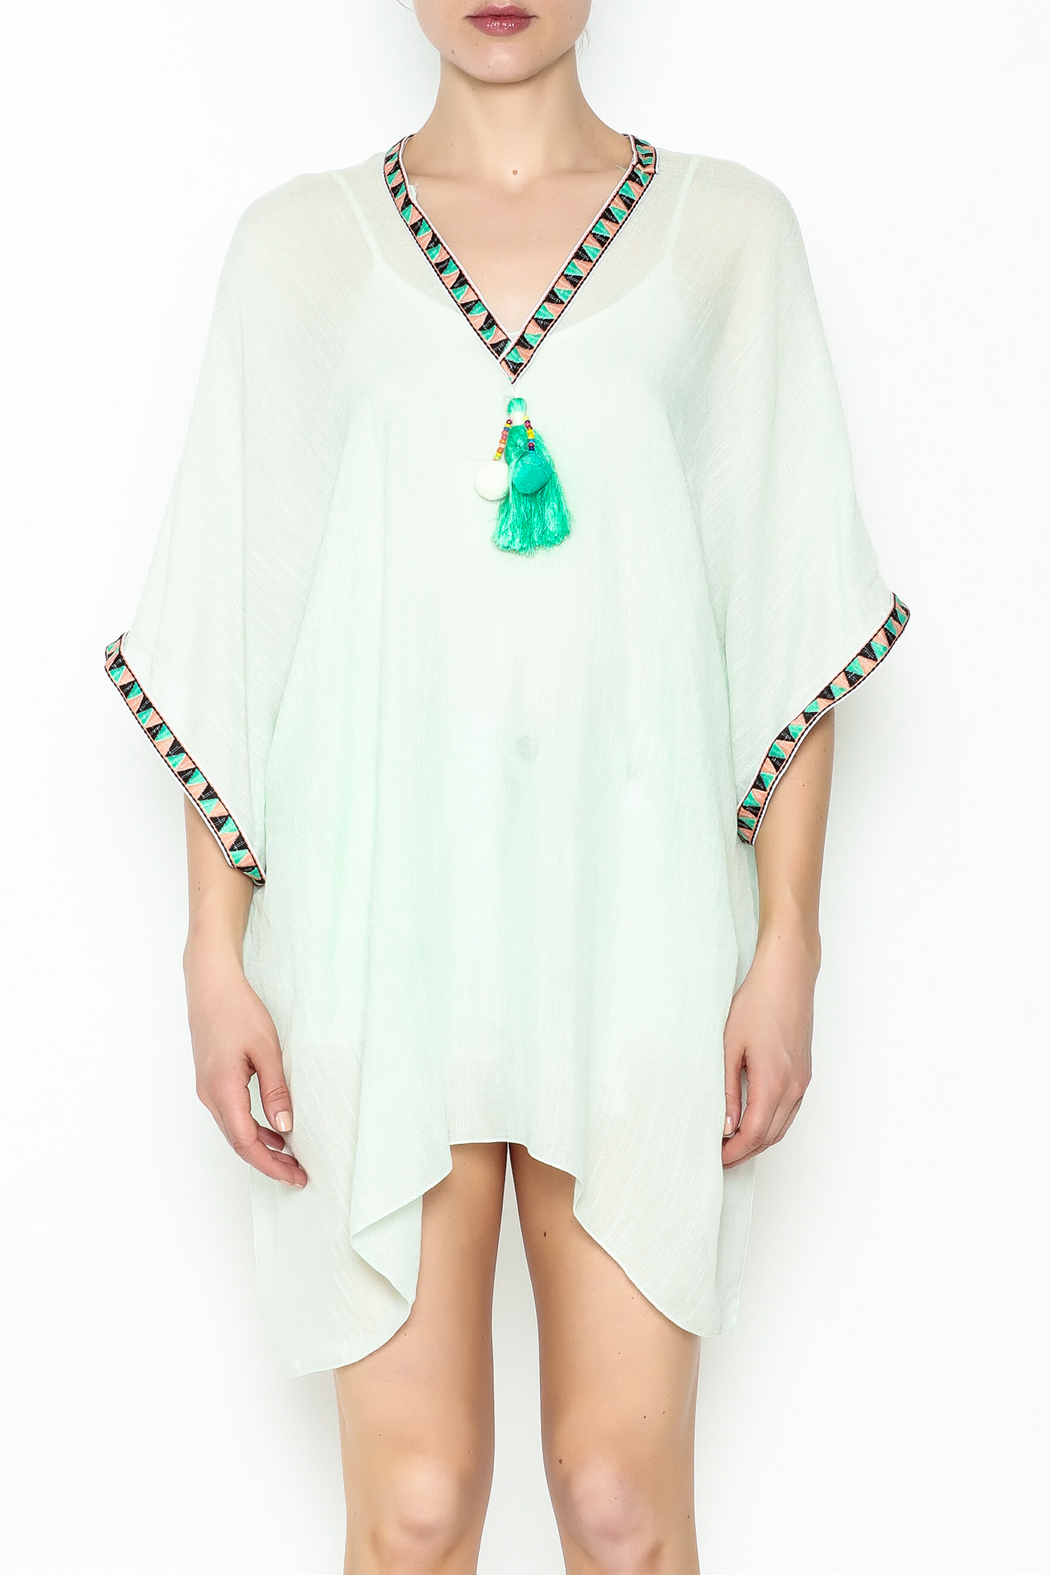 Grace & Emma Boho Cover-Up Top - Front Full Image